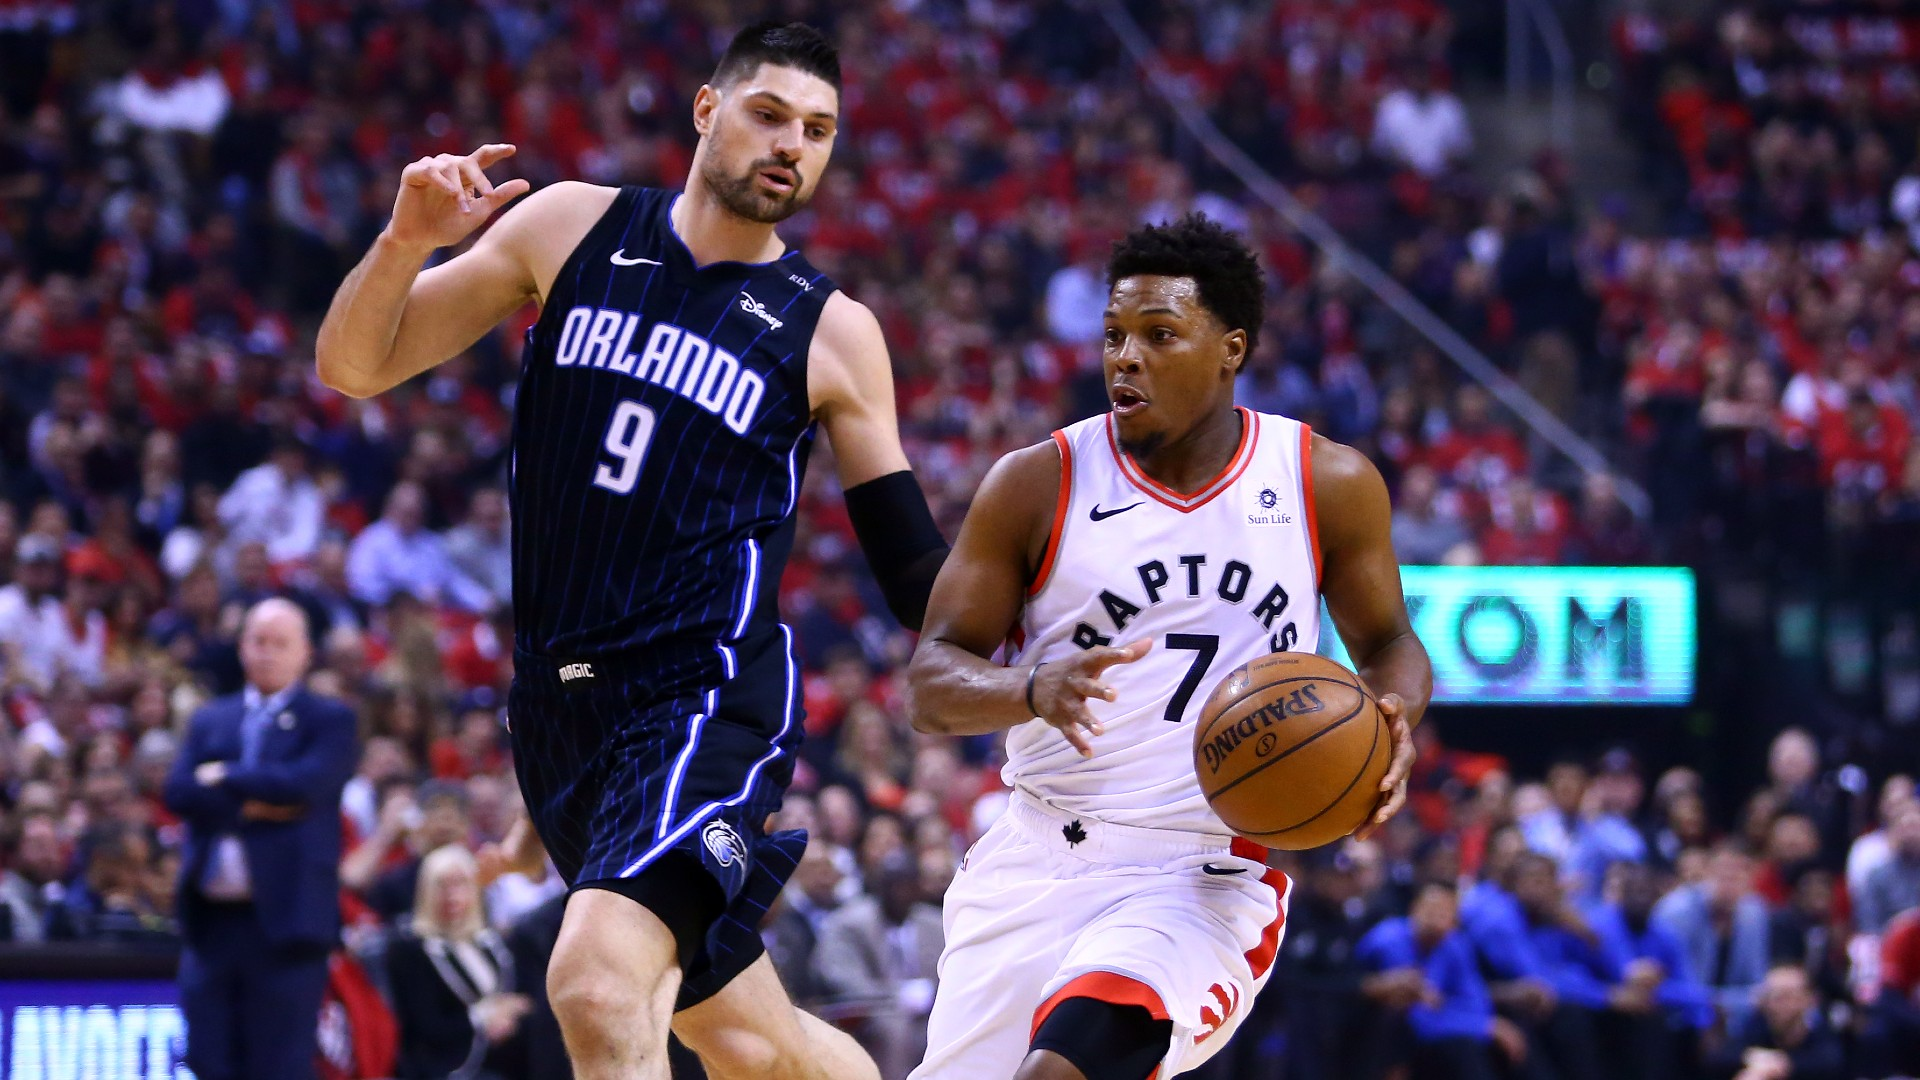 NBA trade rumors: Latest news, buzz, reported deals as 2021 deadline approaches